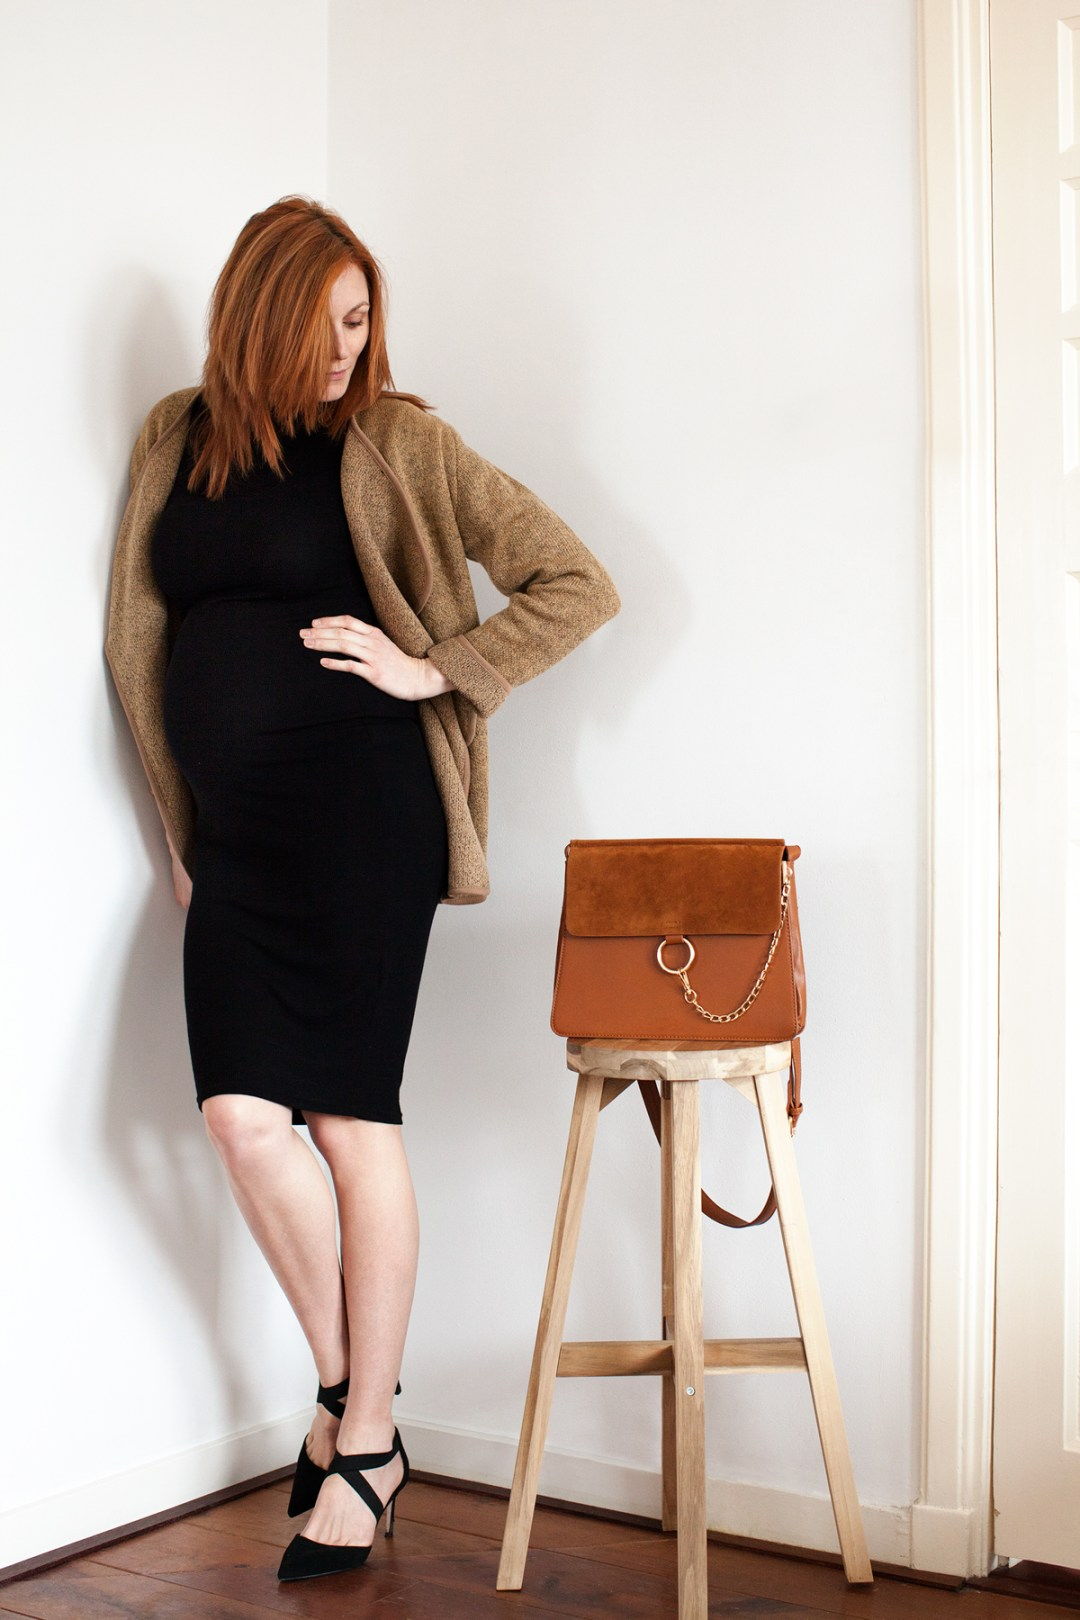 Wearing Non-Maternity Style